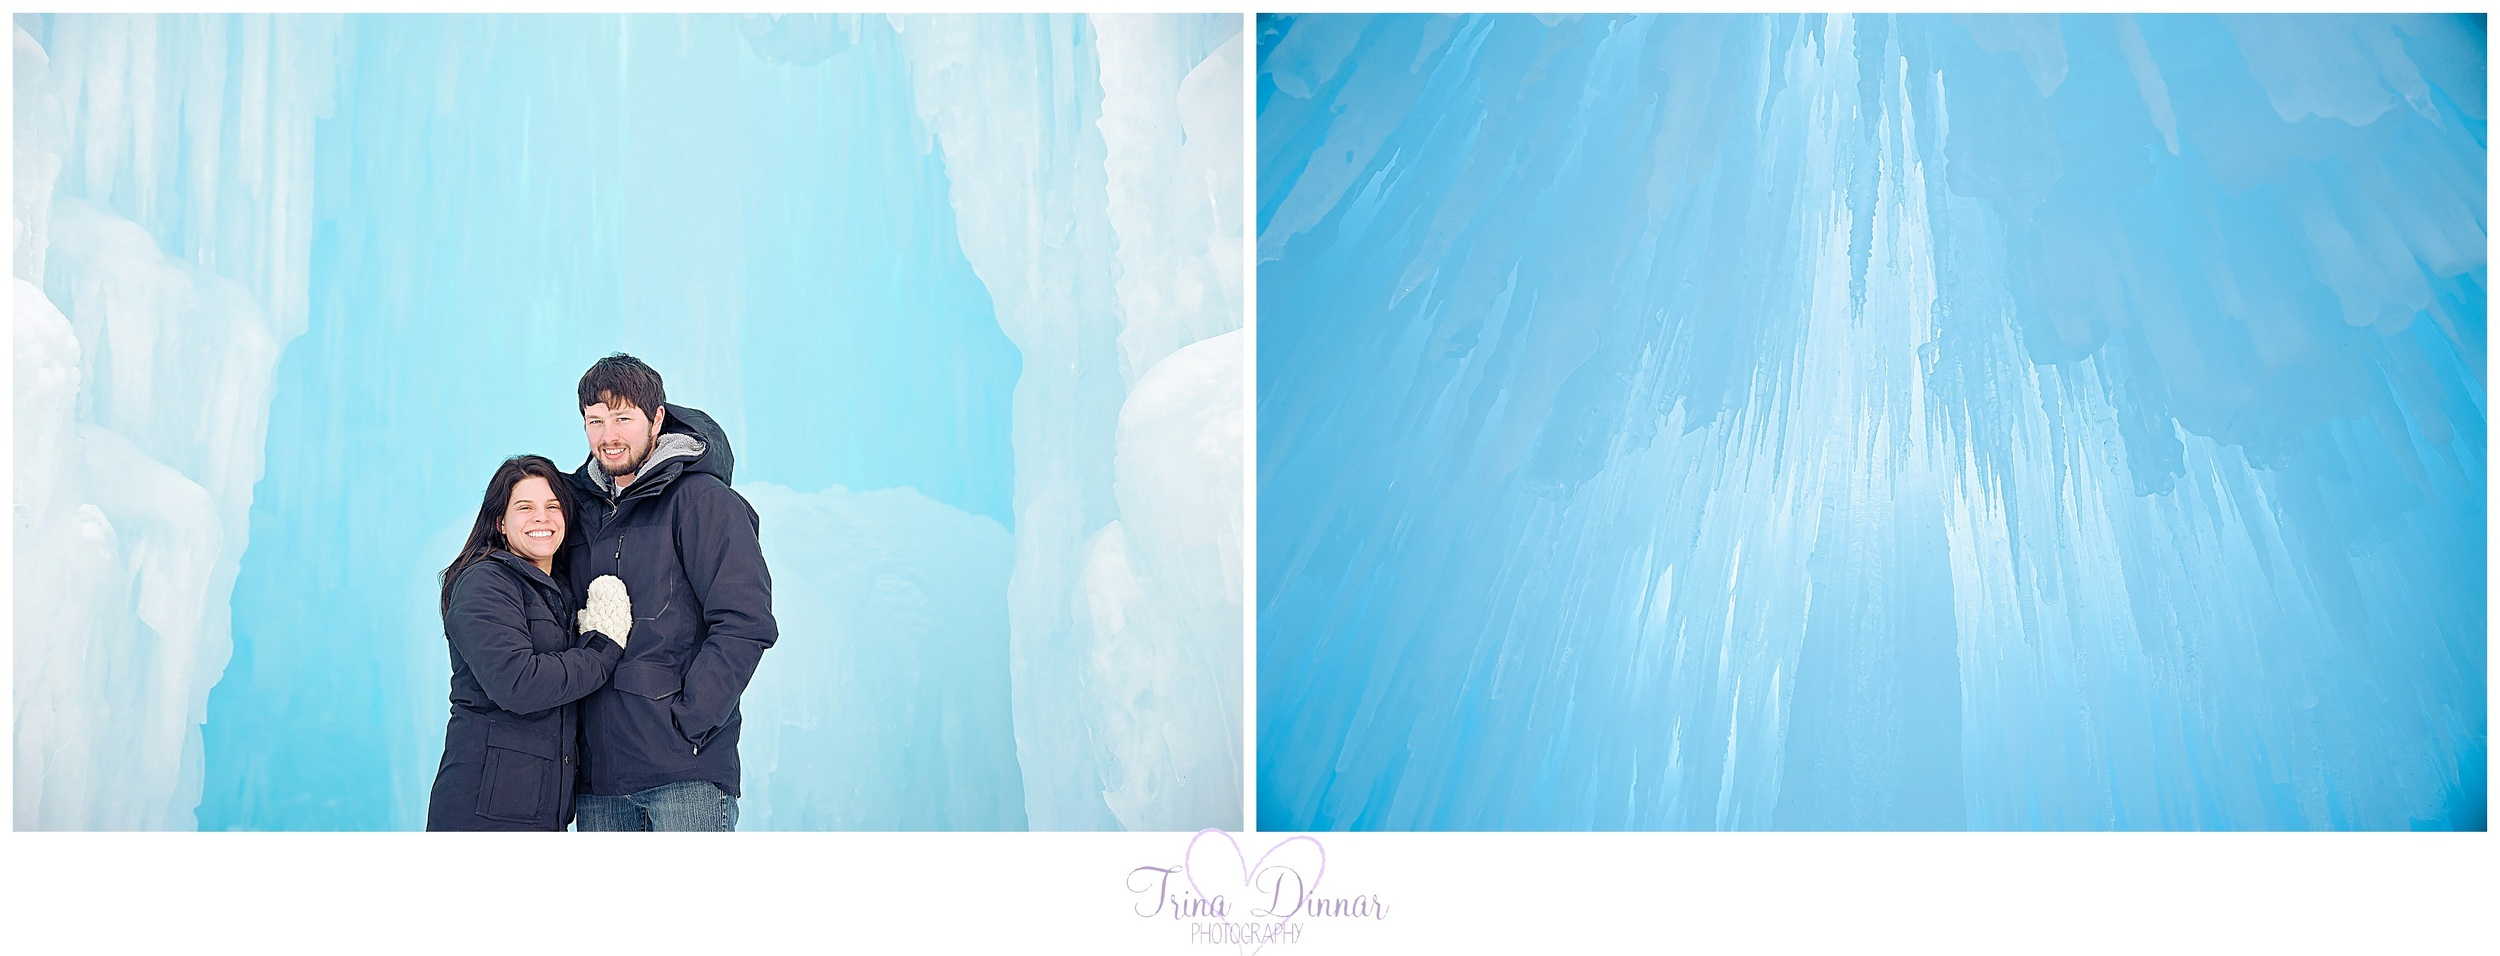 Maine photographer capturing portraits at the ice castles.